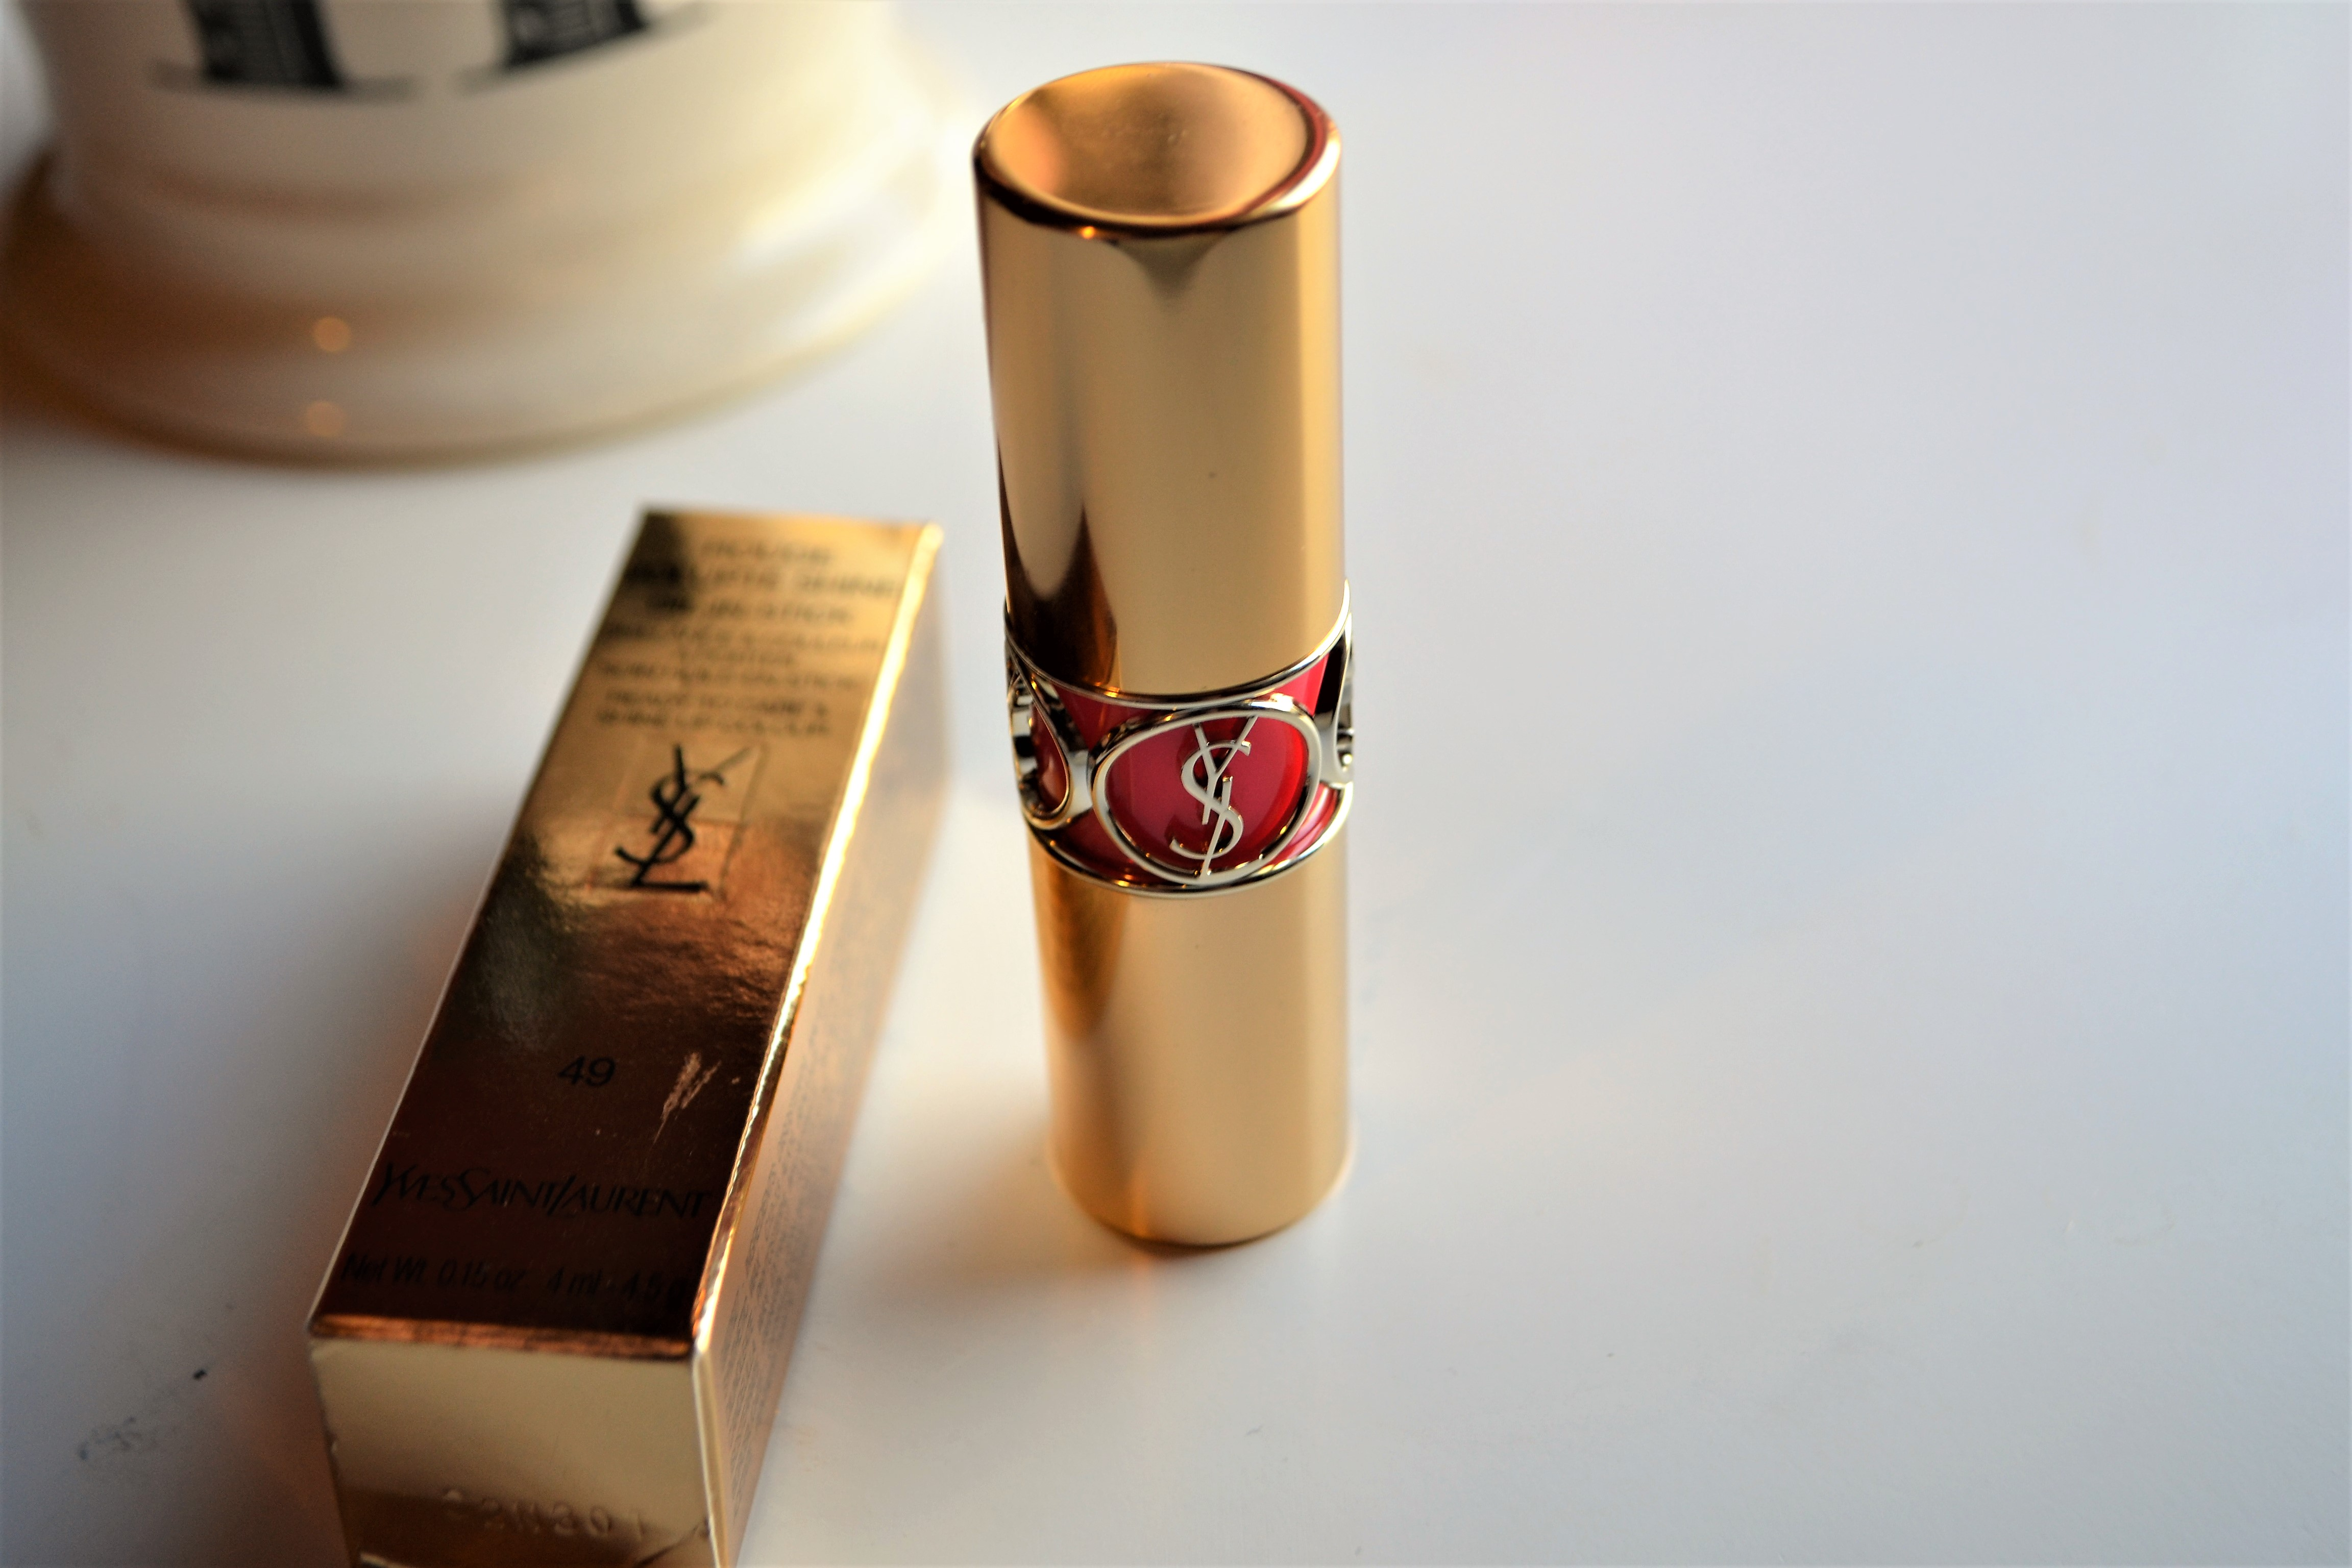 9af23caef3b Gold (almost rose gold in some light) metal surrounds the lipstick that  gives it a high-quality feeling and protection. The silver YSL detail is in  the ...